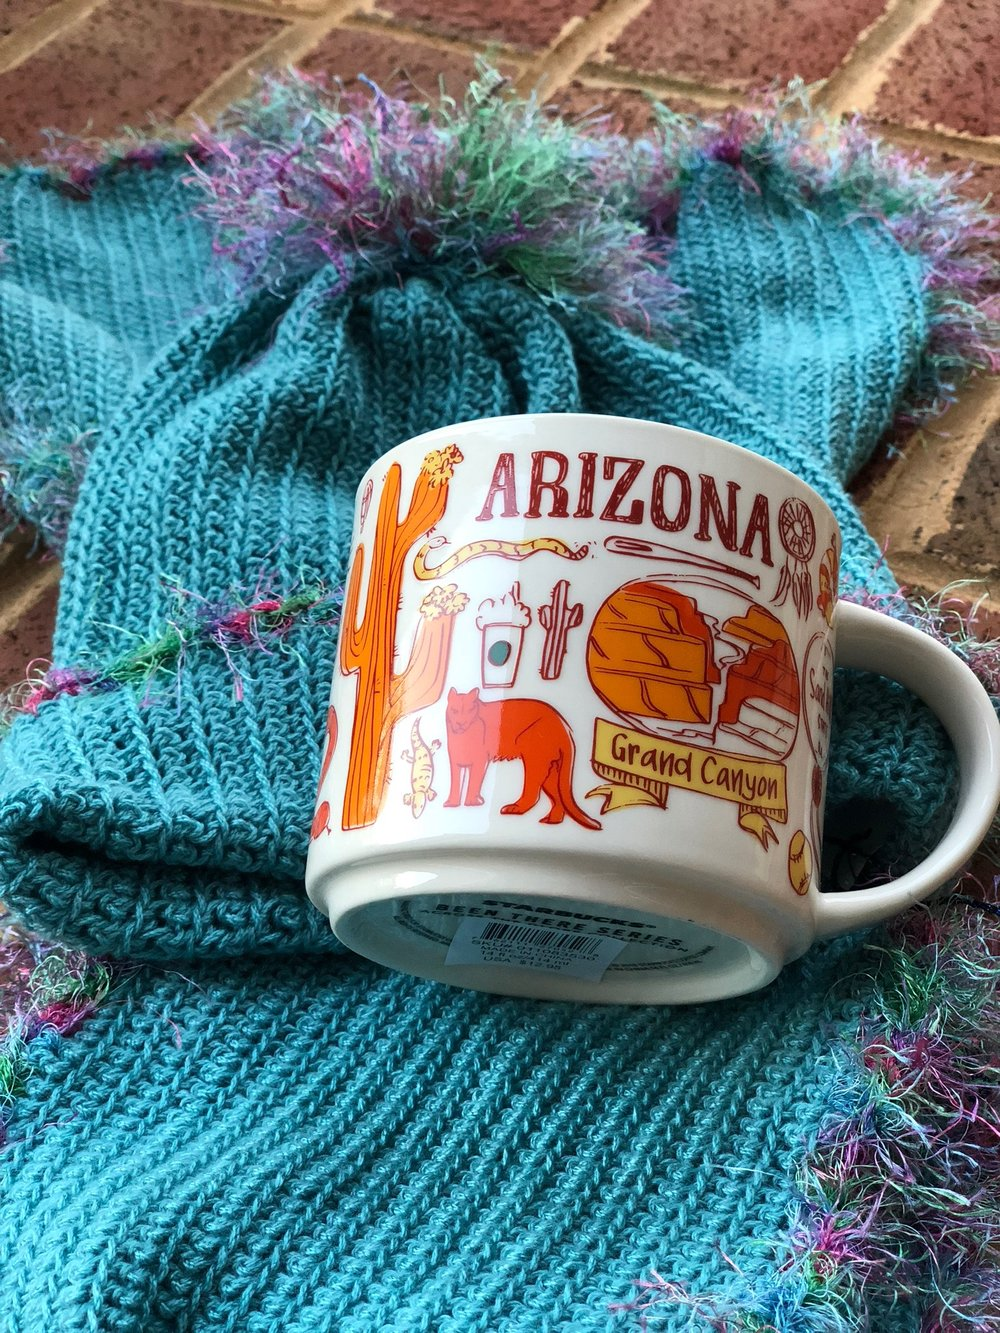 I received two surprise and considerate gifts this week. My former neighbors were in town visiting and stopped by. They now live in Arizona and brought me a mug from my favorite coffee shop! They know me well! The hat/scarf set was sent to me by a friend from Hilton Head. We have spent yarn time together stitching and talking. Her out-of-the-blue gift and note were so thoughtful!